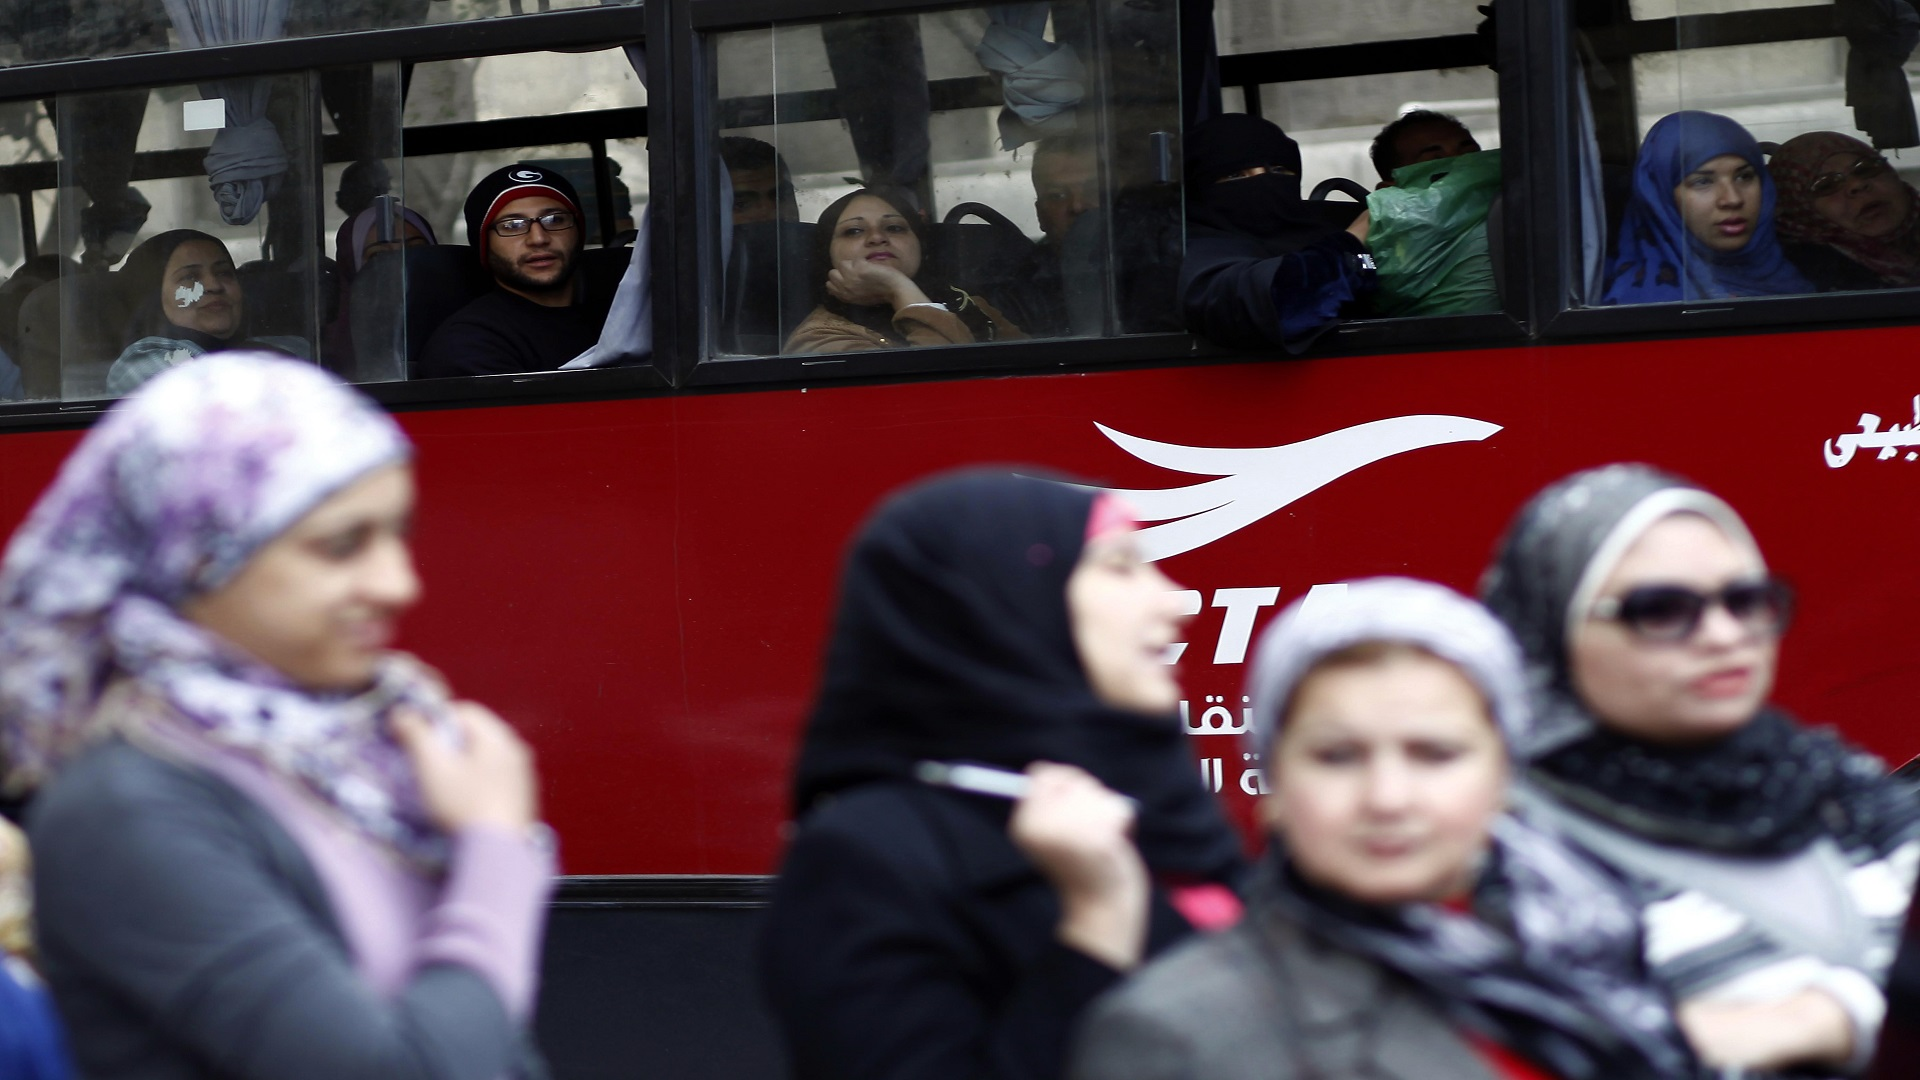 Egyptians ride in a bus past a polling station in central Cairo on December 15, 2012. (MAHMUD KHALED/AFP/Getty Images)